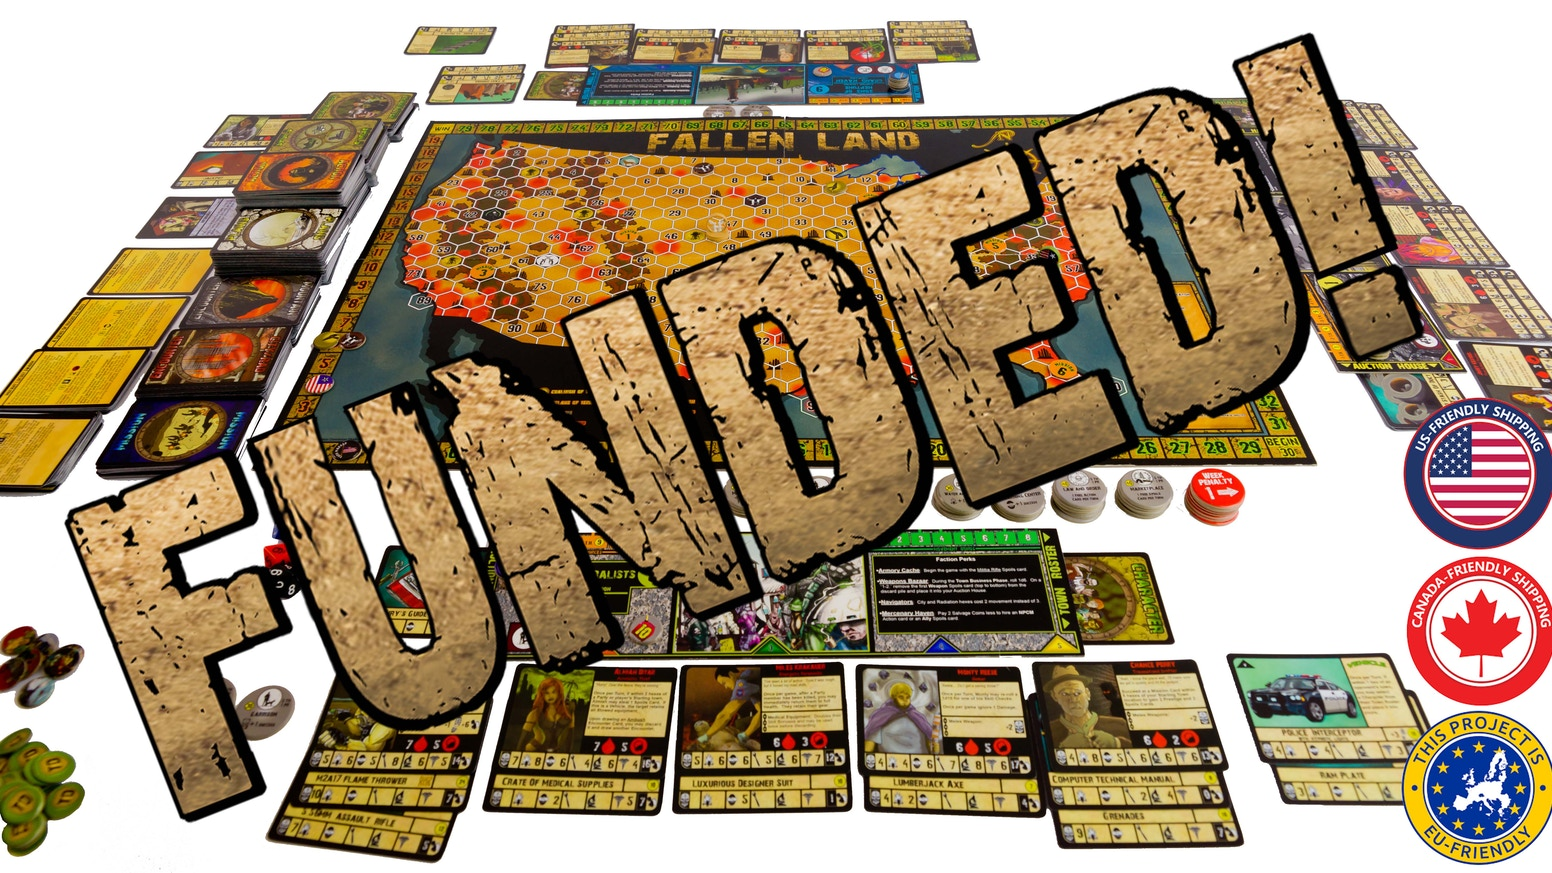 Playing tabletop games - A Thematic Board Game Set In Post Apocalyptic America It Features Sandbox Style Game